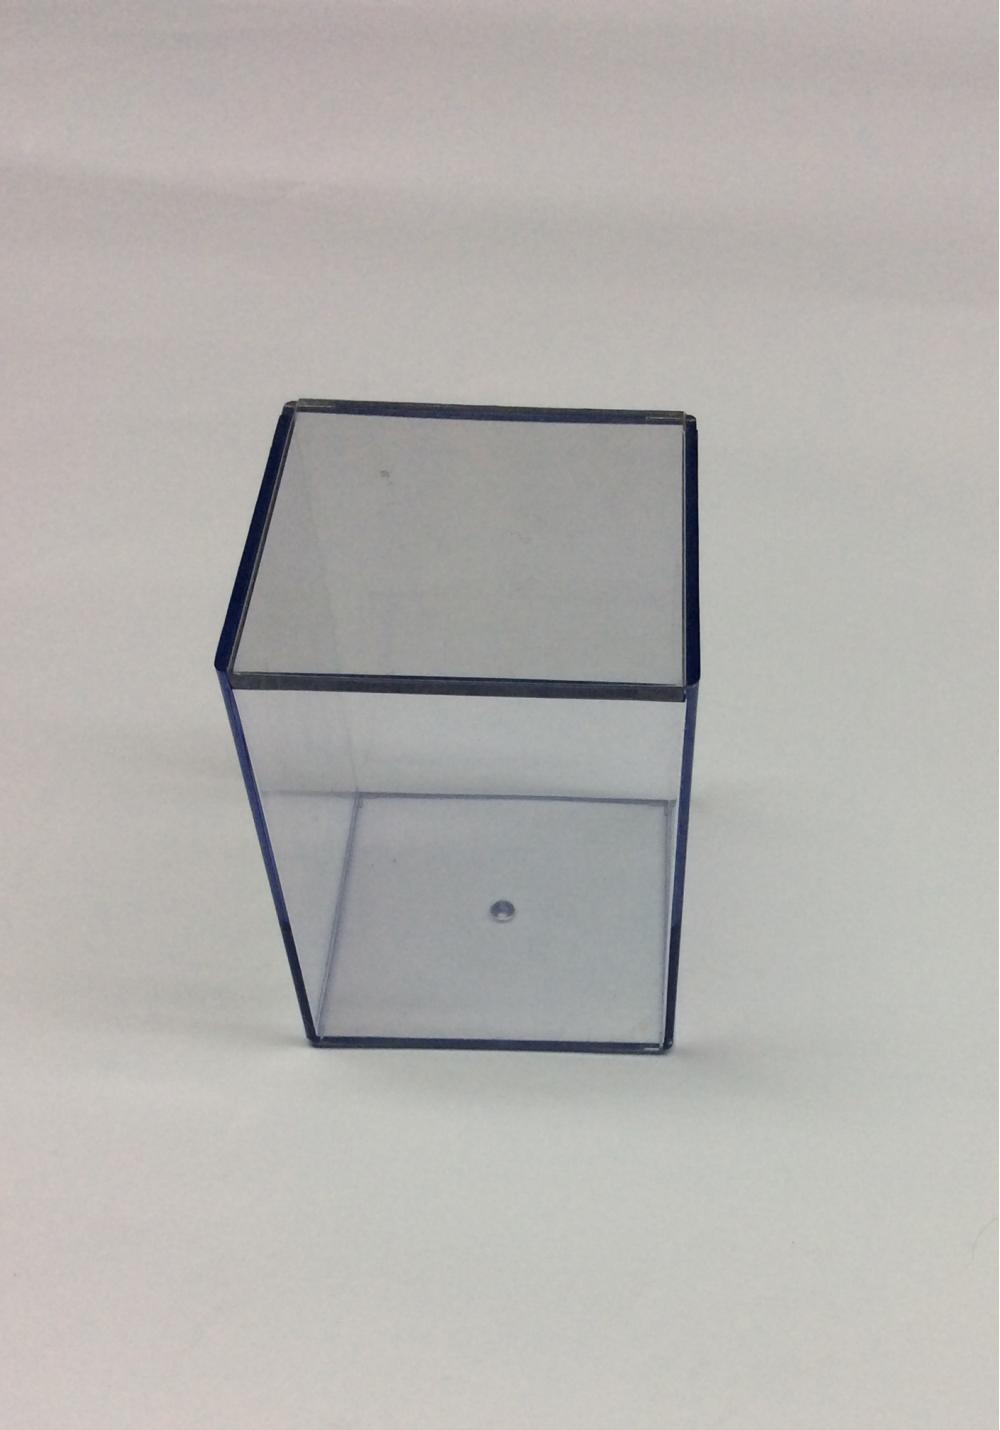 Plastic Square Transparent Storage Box